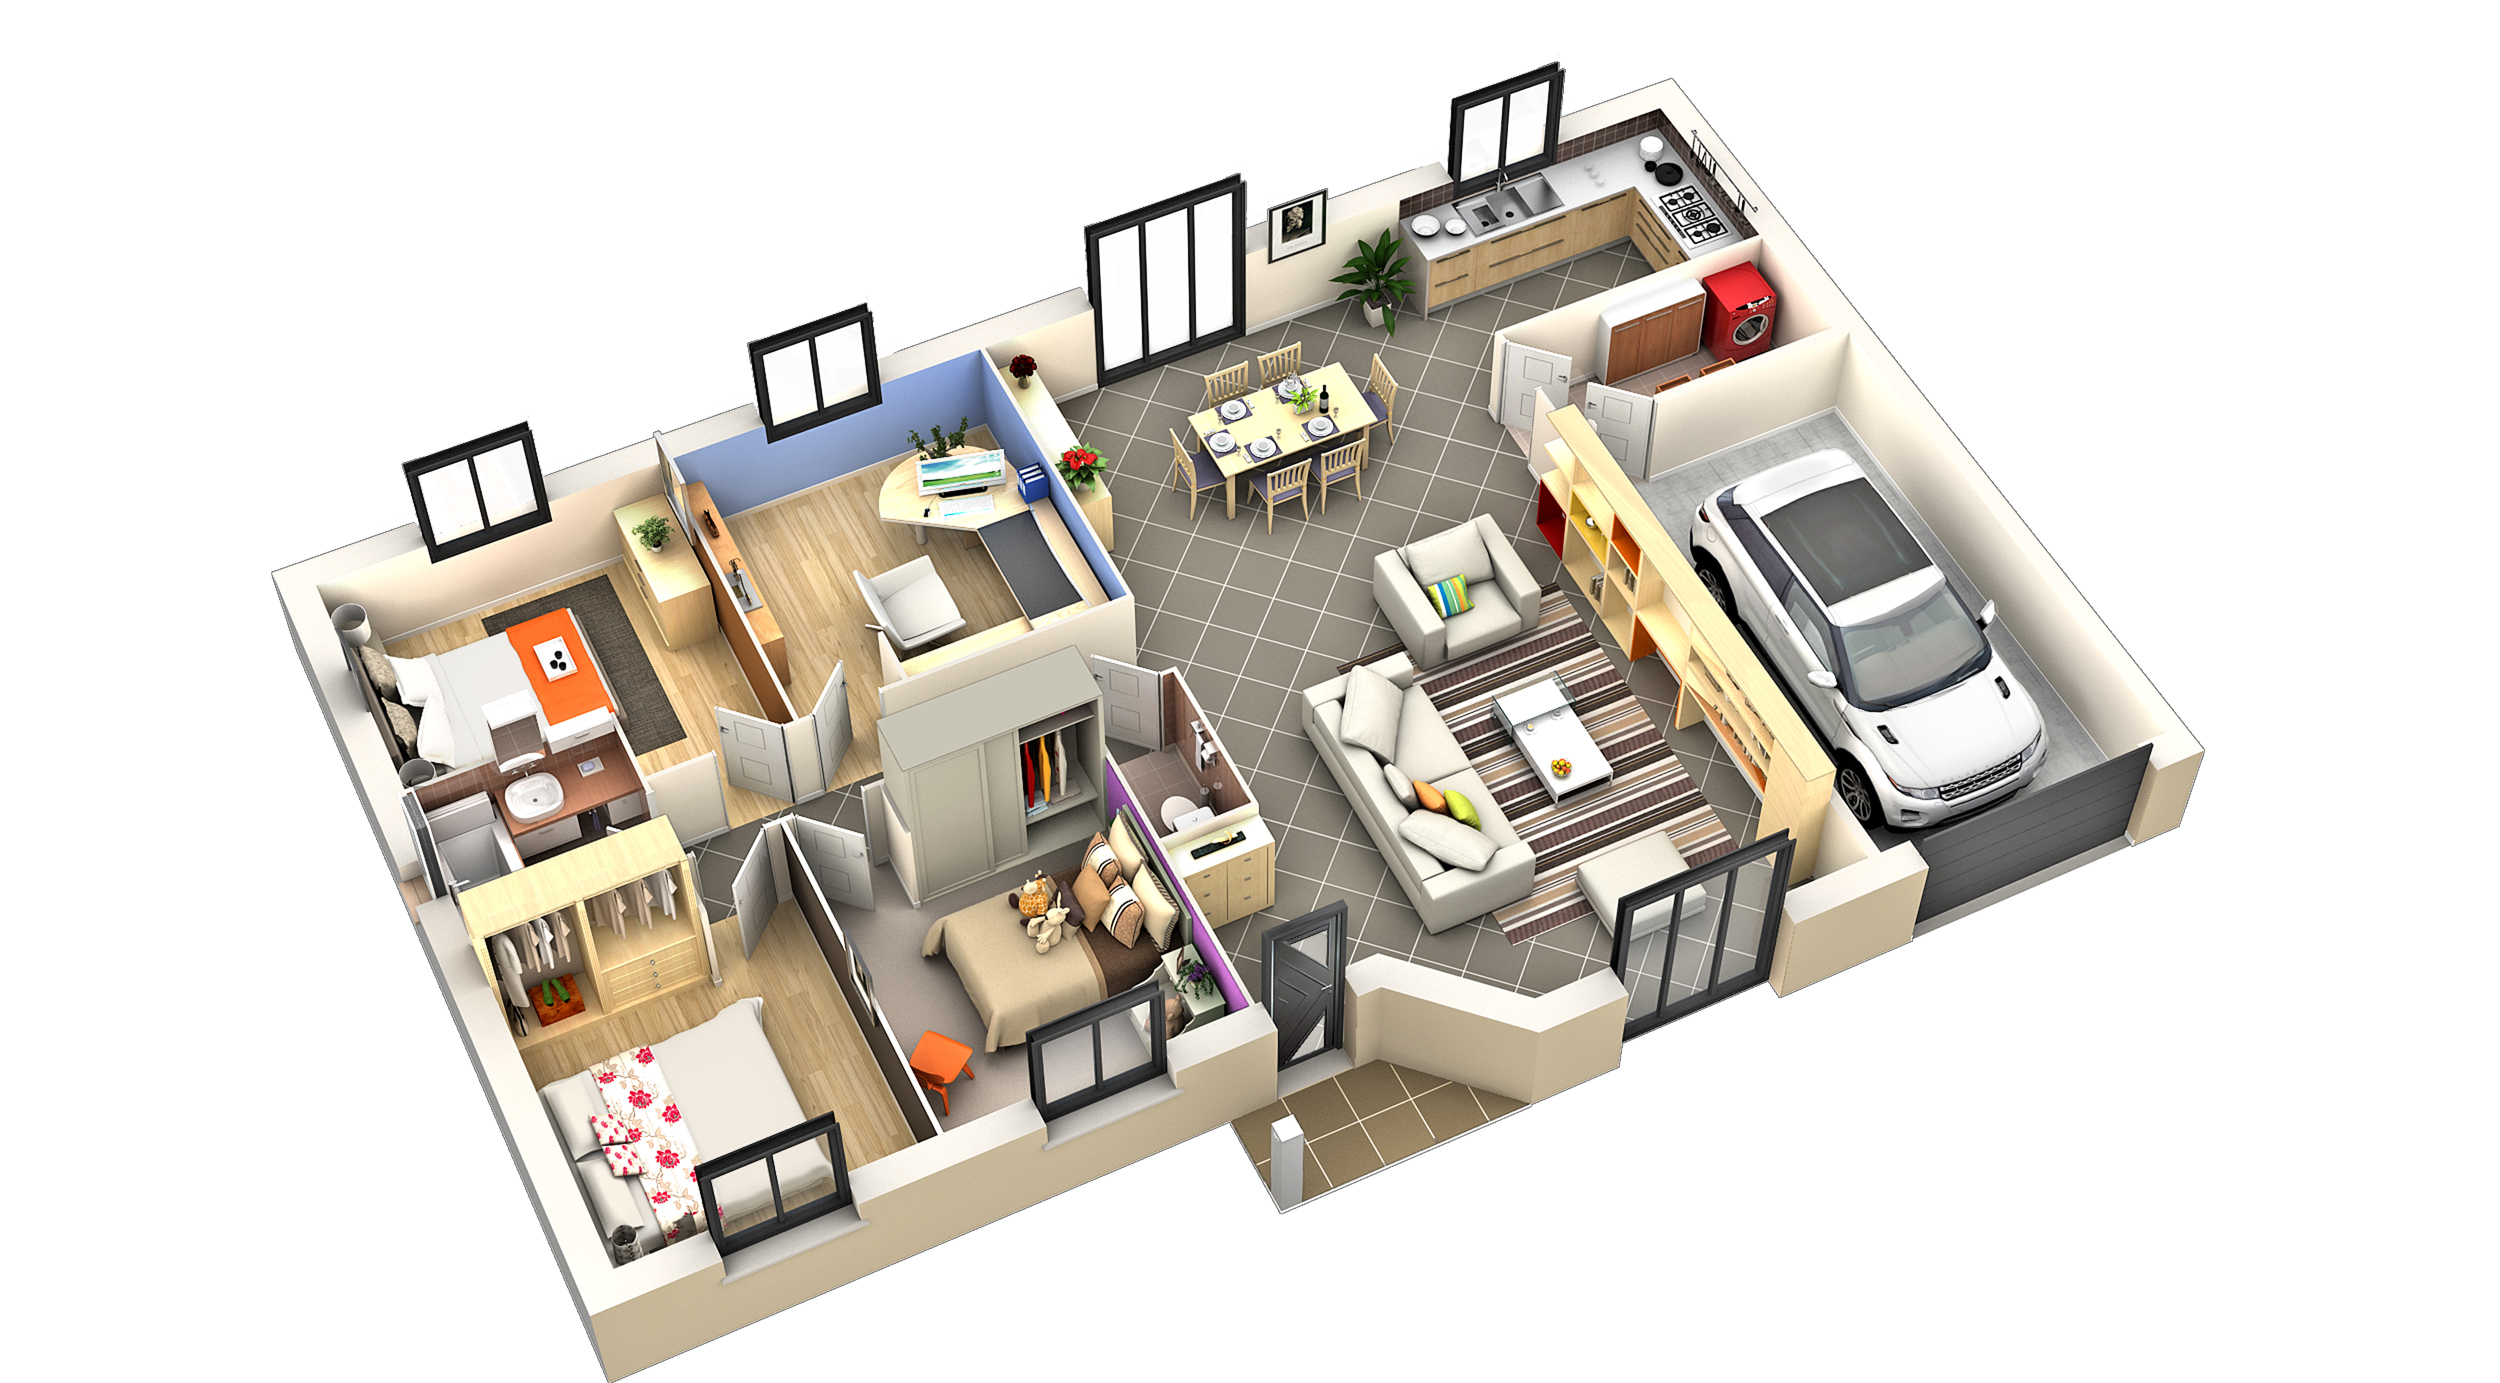 Model maison interieur - Plan de loft moderne ...